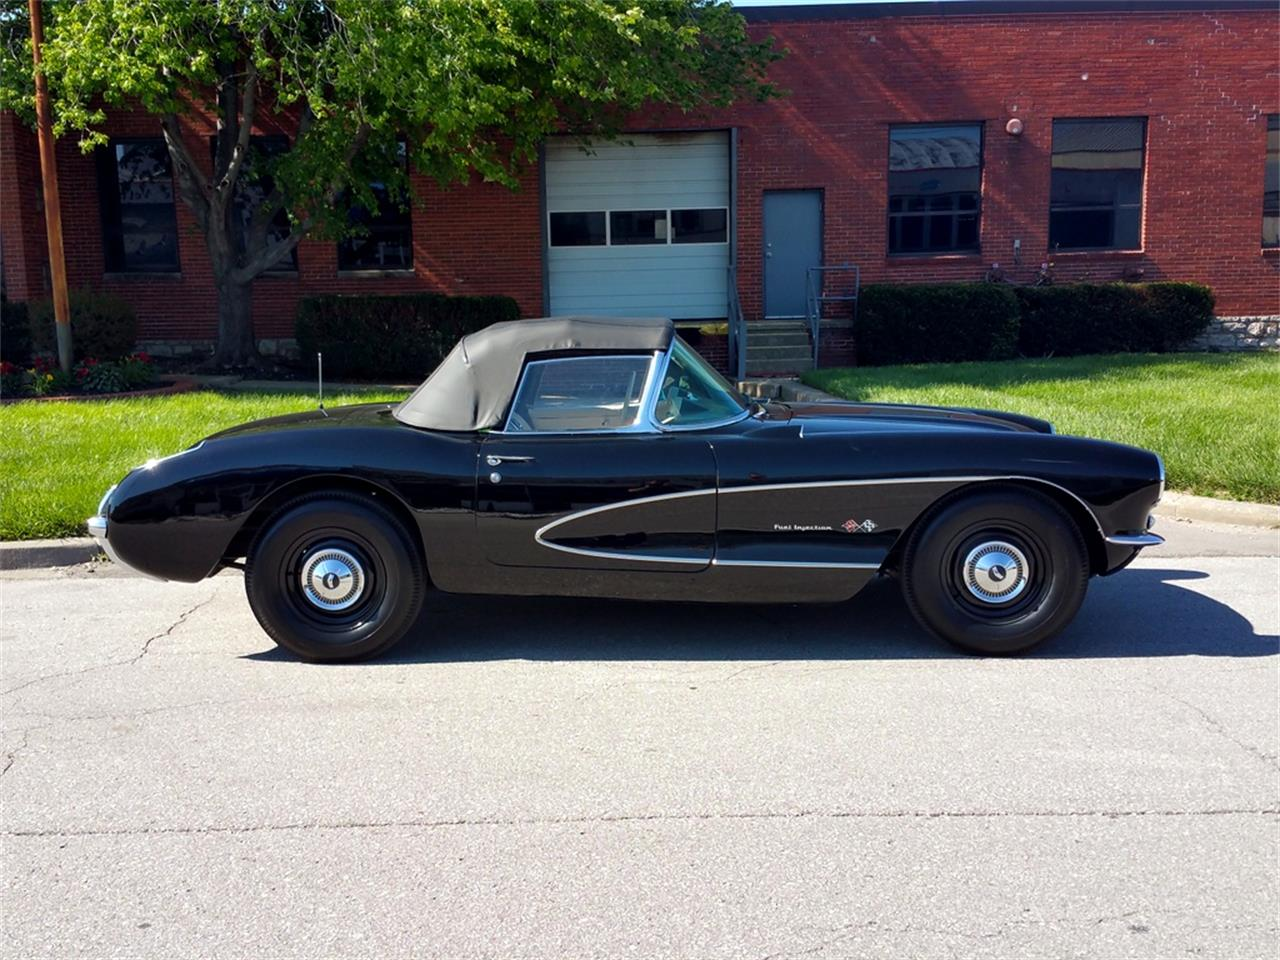 Large Picture of '57 Chevrolet Corvette located in N. Kansas City Missouri - $107,500.00 Offered by Vintage Vettes, LLC - MO1R